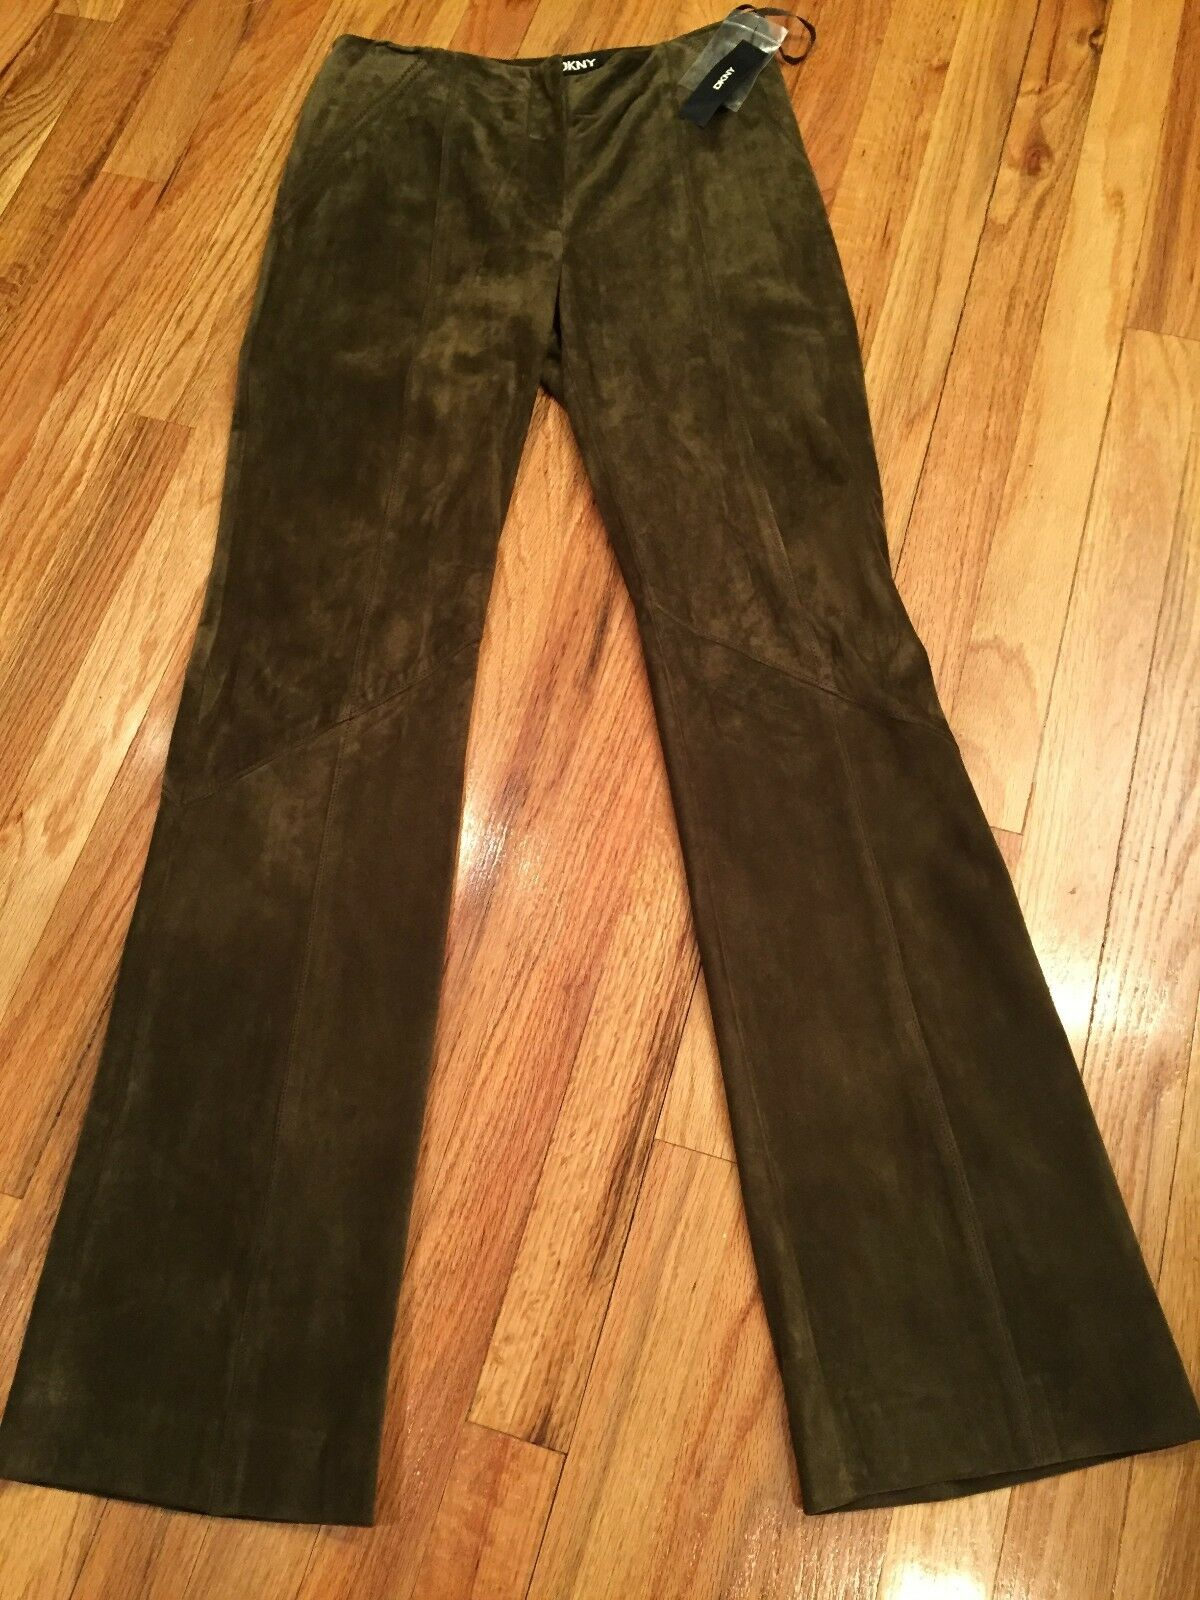 DKNY Size 6 MOSS OLIVE SUEDE LEATHER LINED Jeans Pants BOOT LEG PANTS - NEW TAGS